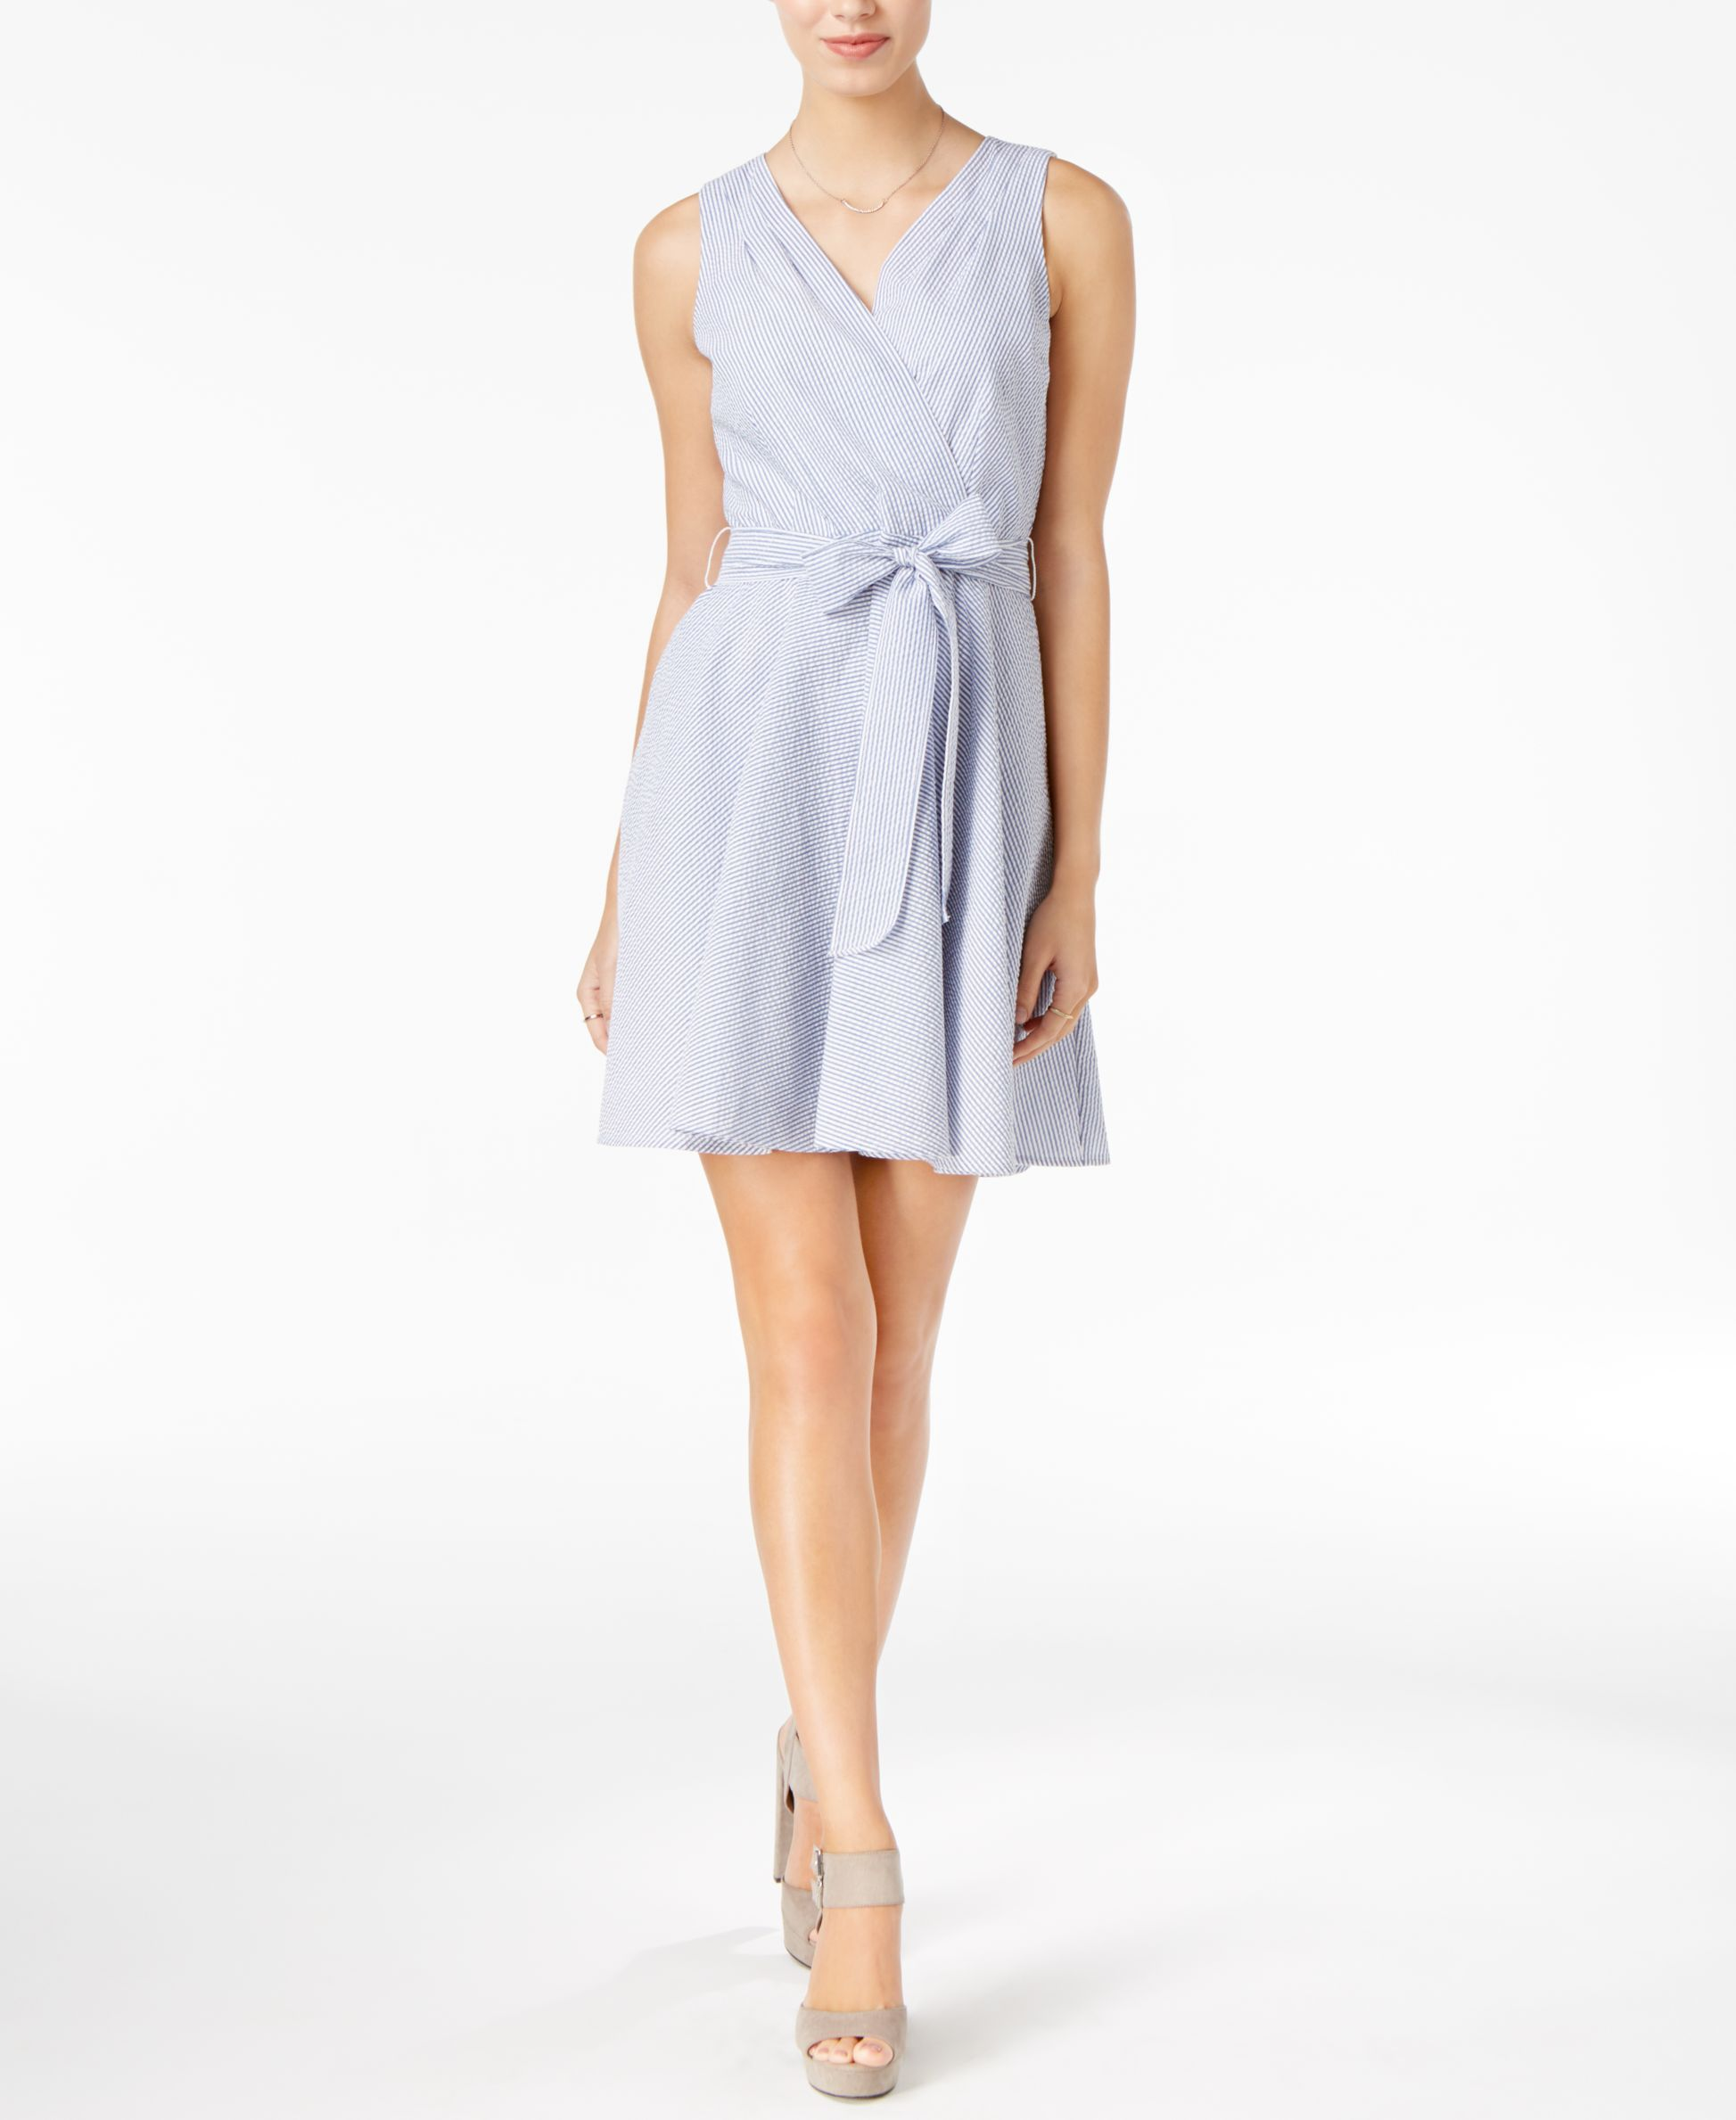 Maison Jules Fit & Flare Wrap Dress, Only at Macy's